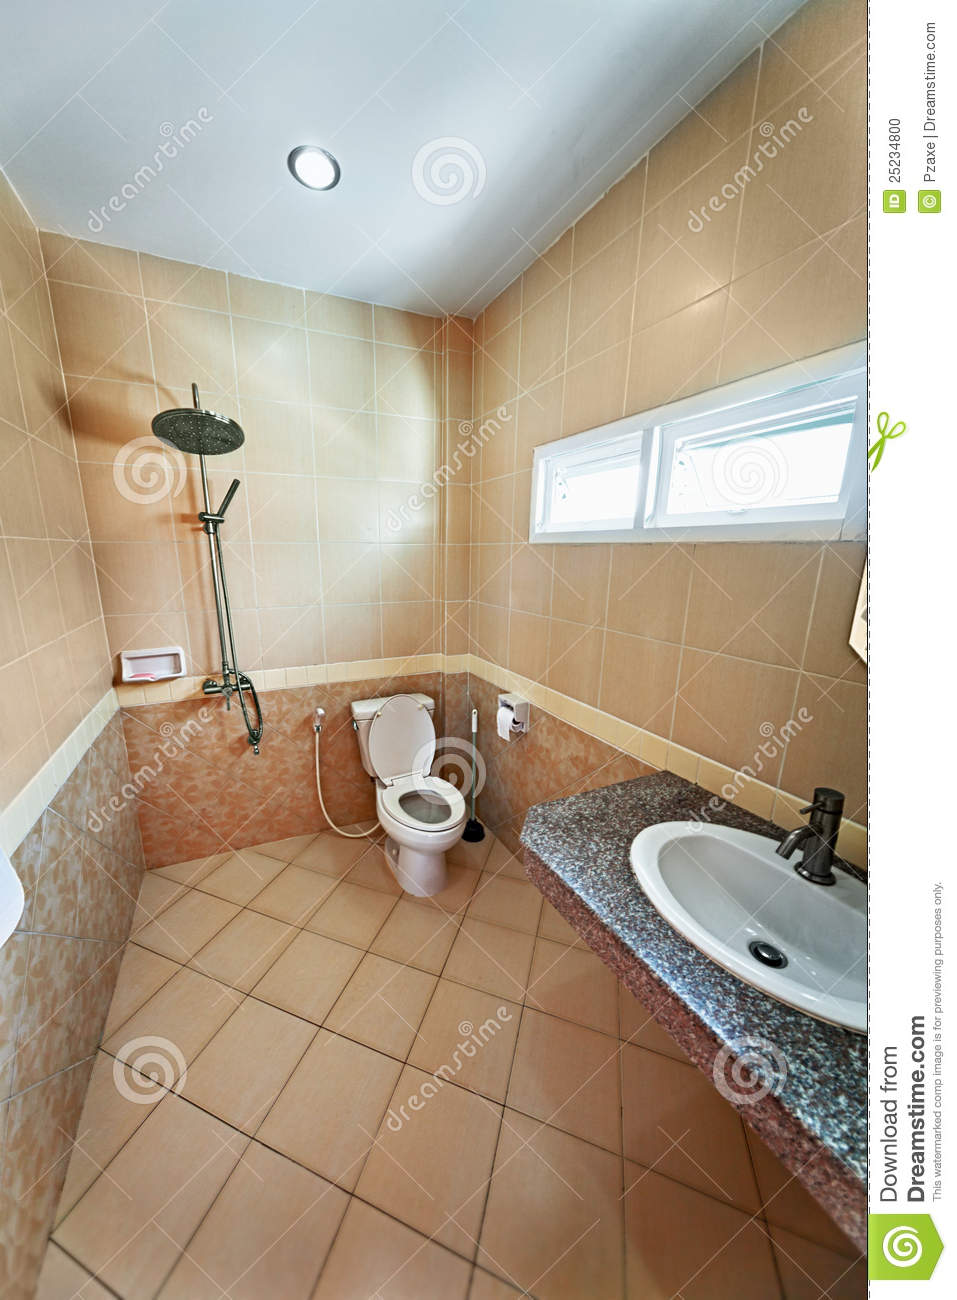 Iinterior of beige bathroom with shower stock photo for Petite salle de bain moderne douche